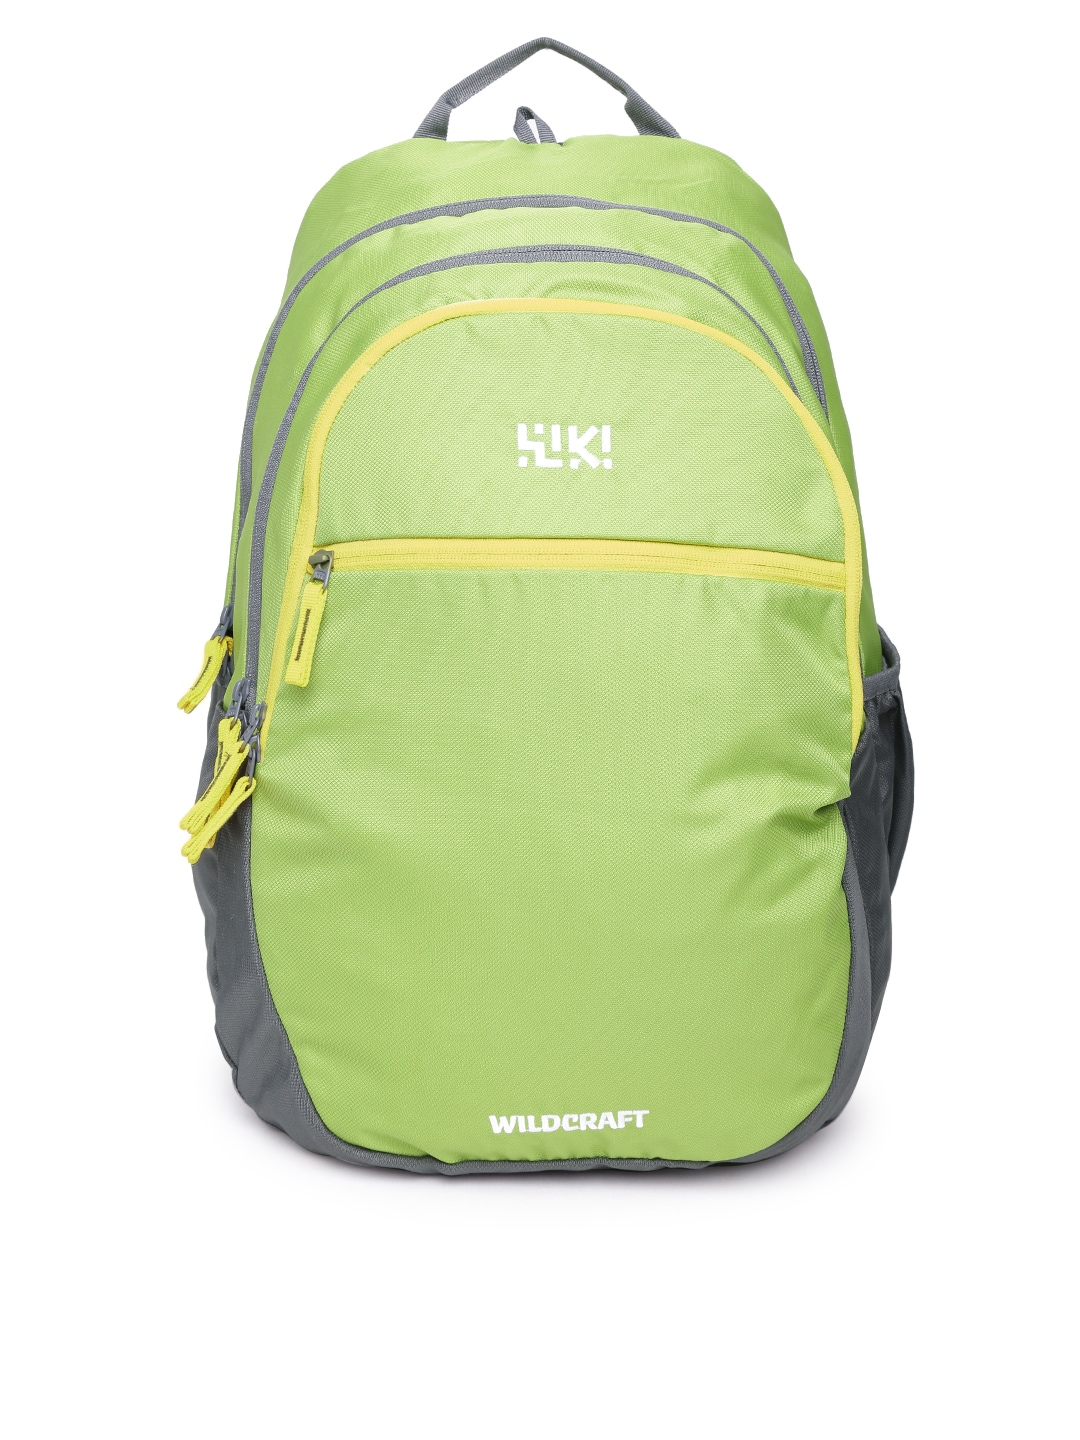 f90ed75b7d Wildcraft Green Backpacks - Buy Wildcraft Green Backpacks online in India